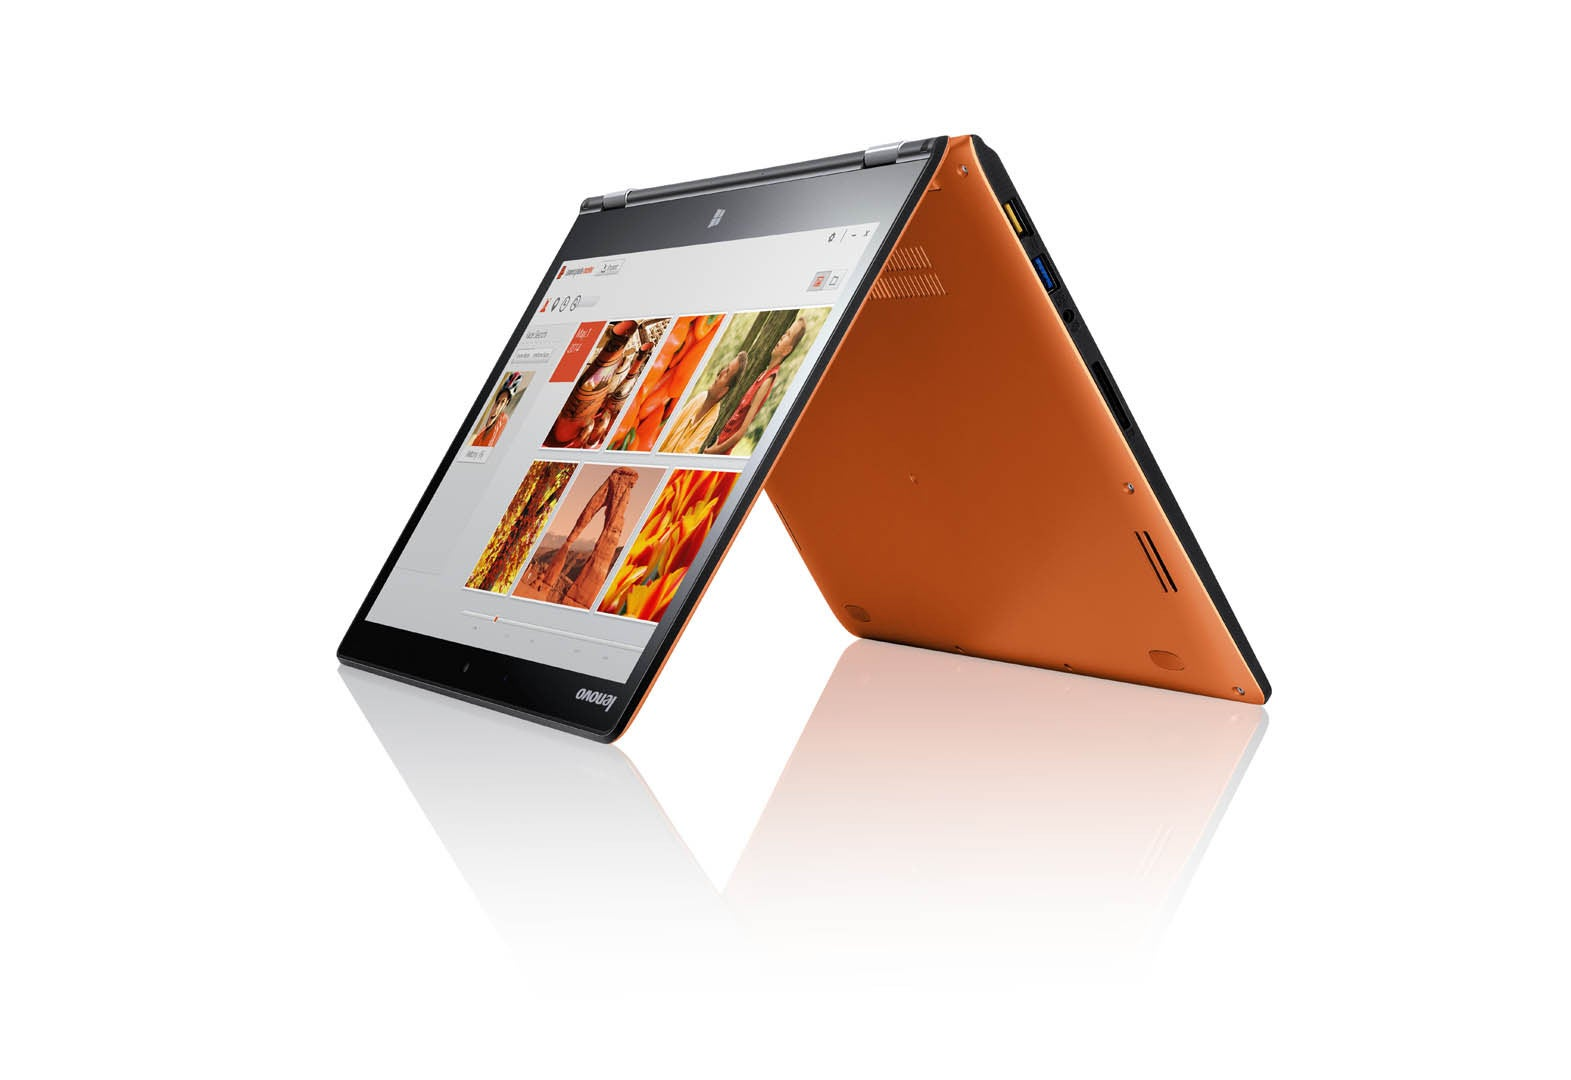 Lost your digital stylus? Just write on Lenovo's new Yoga tablet